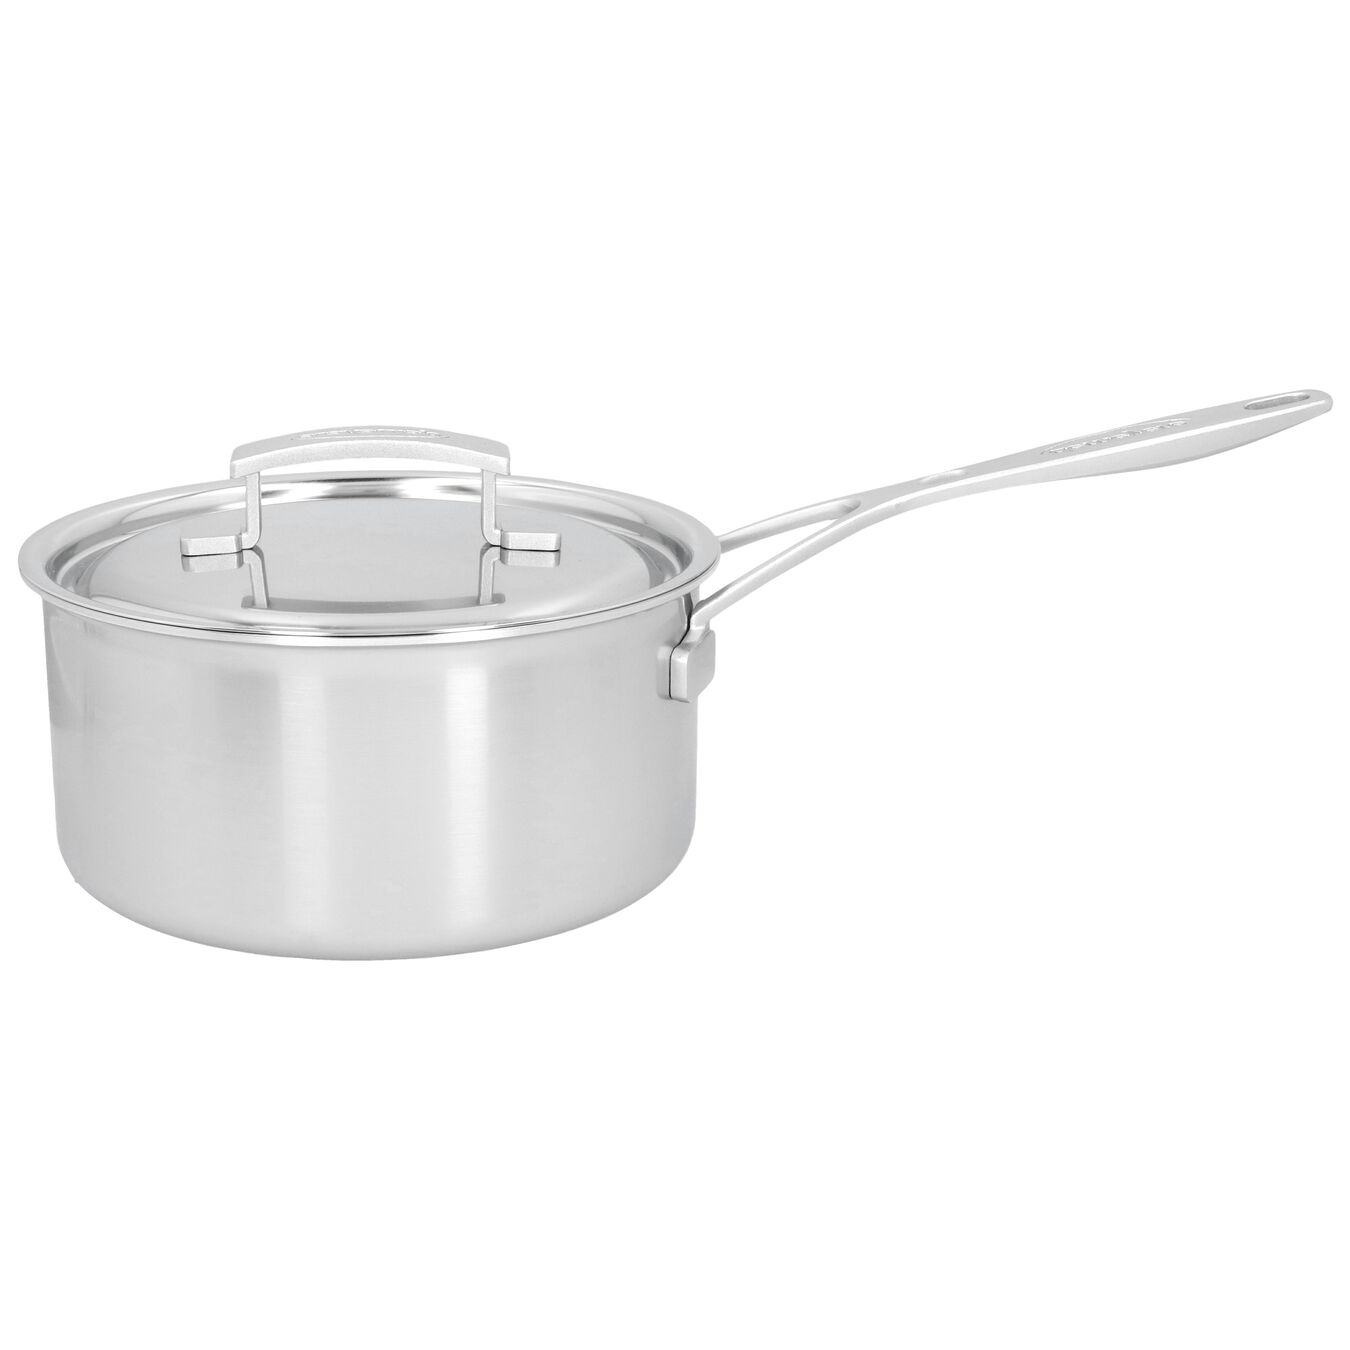 3 l round Sauce pan with lid, silver,,large 1